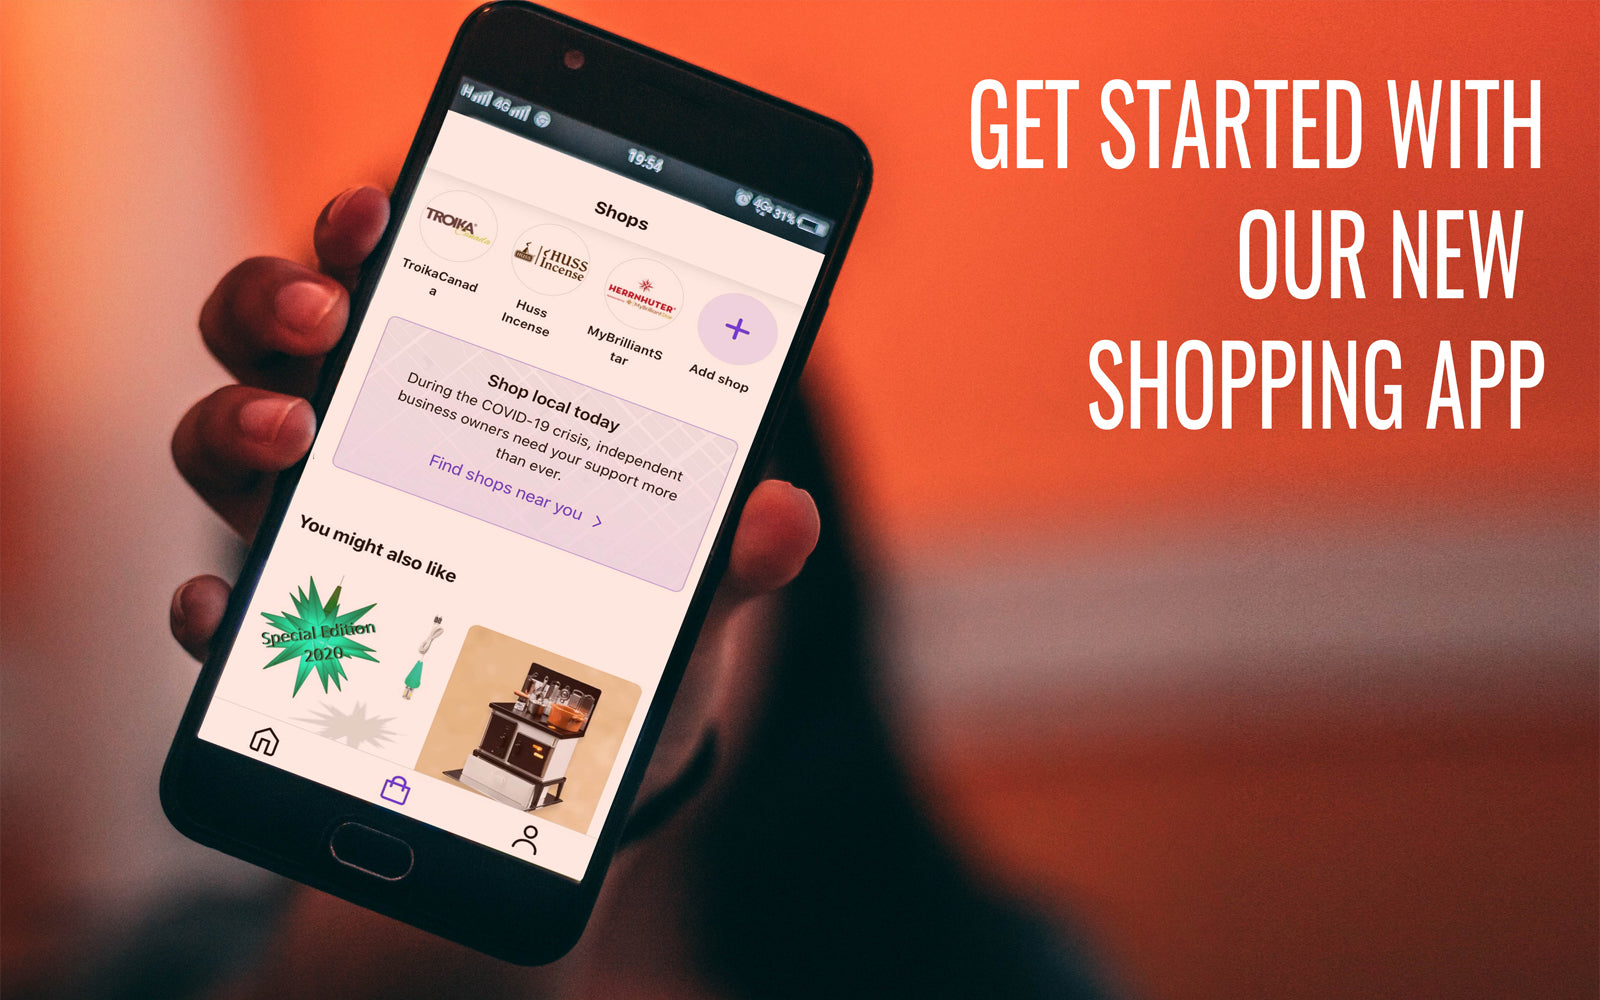 SHOP - THE NEW SHOPPING APP